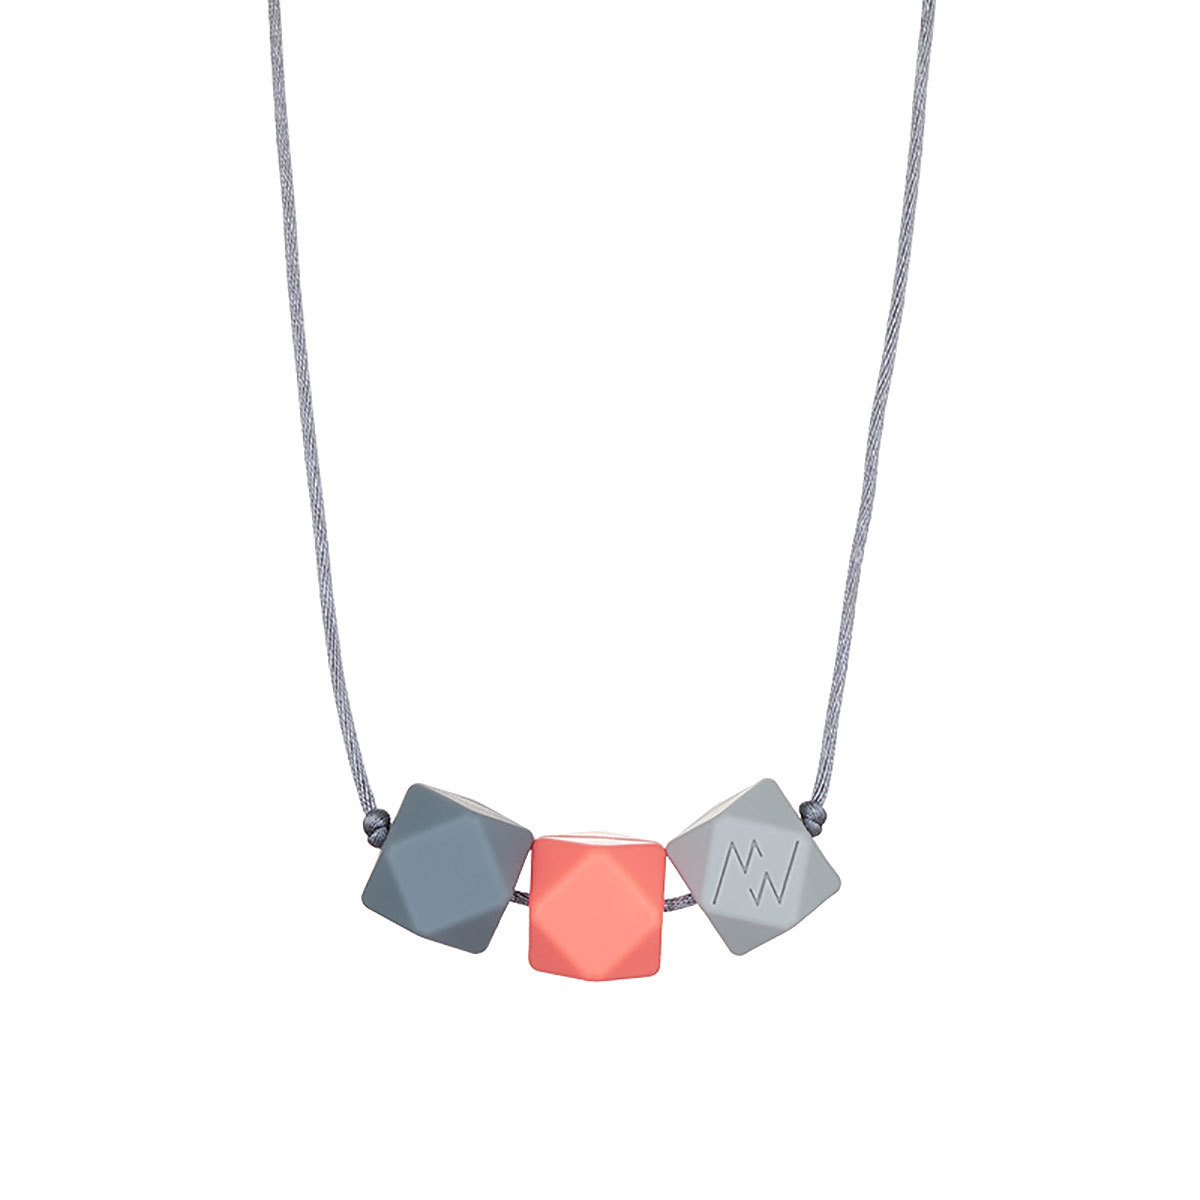 Anneau de dentition Collier de Dentition Simple Dimple Sunset Collier de Dentition Simple Dimple Sunset